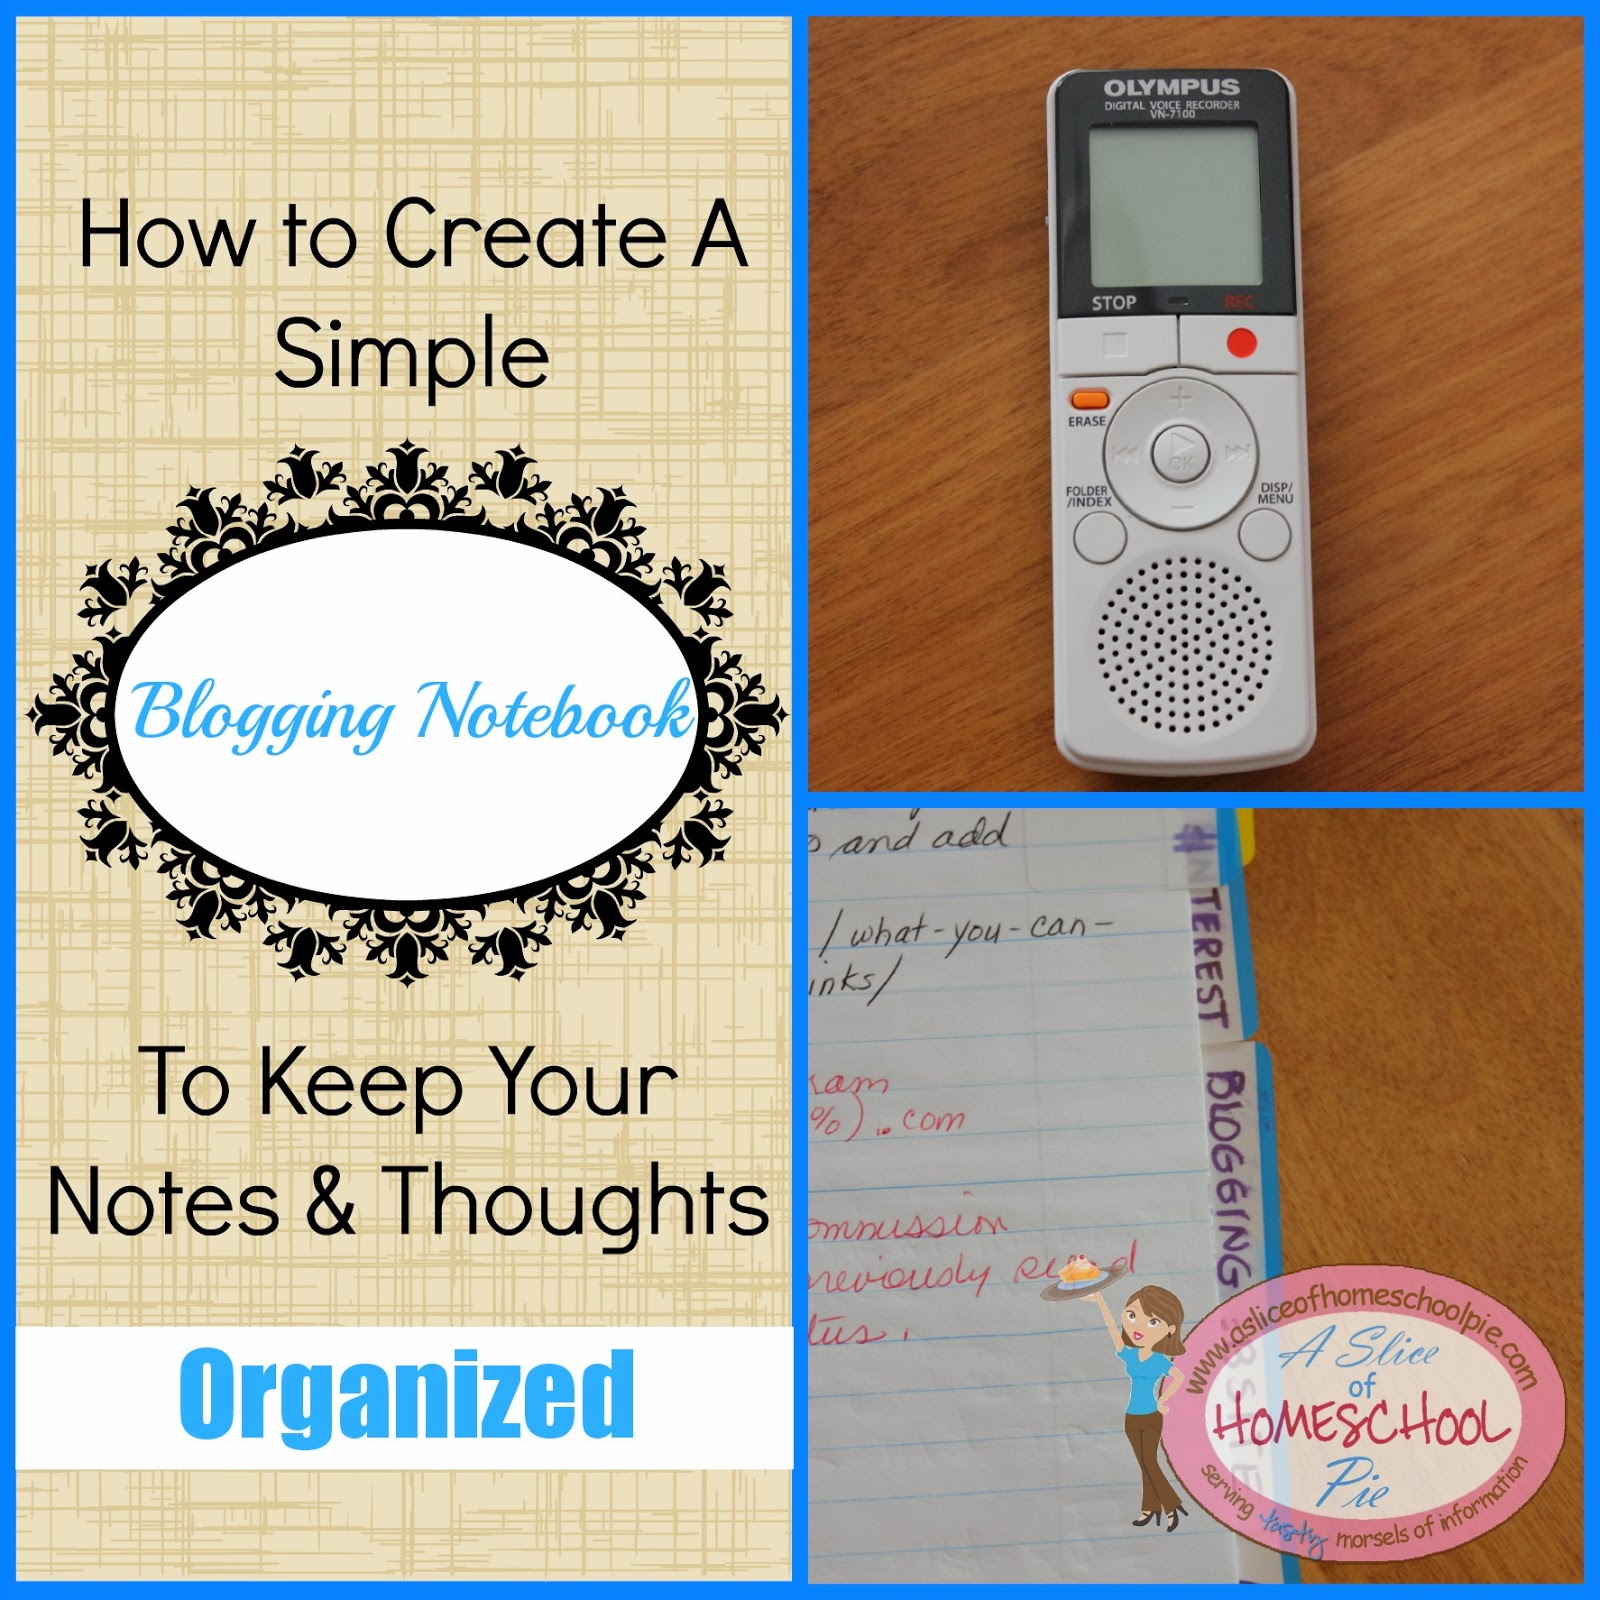 How to create a simple blogging notebook to keep your notes and thoughts organized by A Slice of Homeschool Pie #blogging